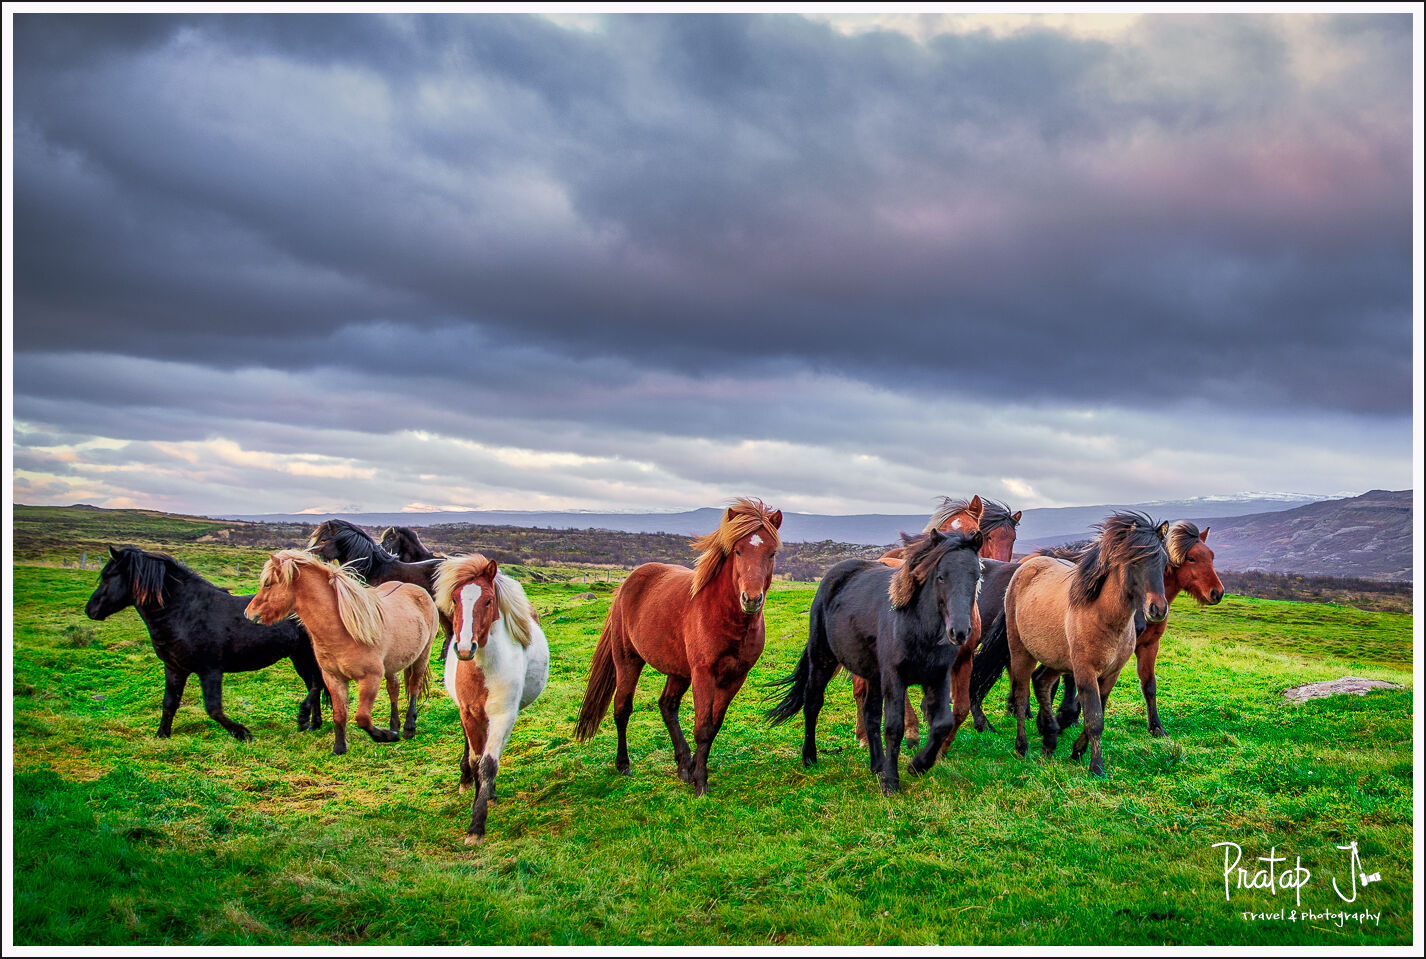 A group of colourful Icelandic horses running on green grass under grey skies